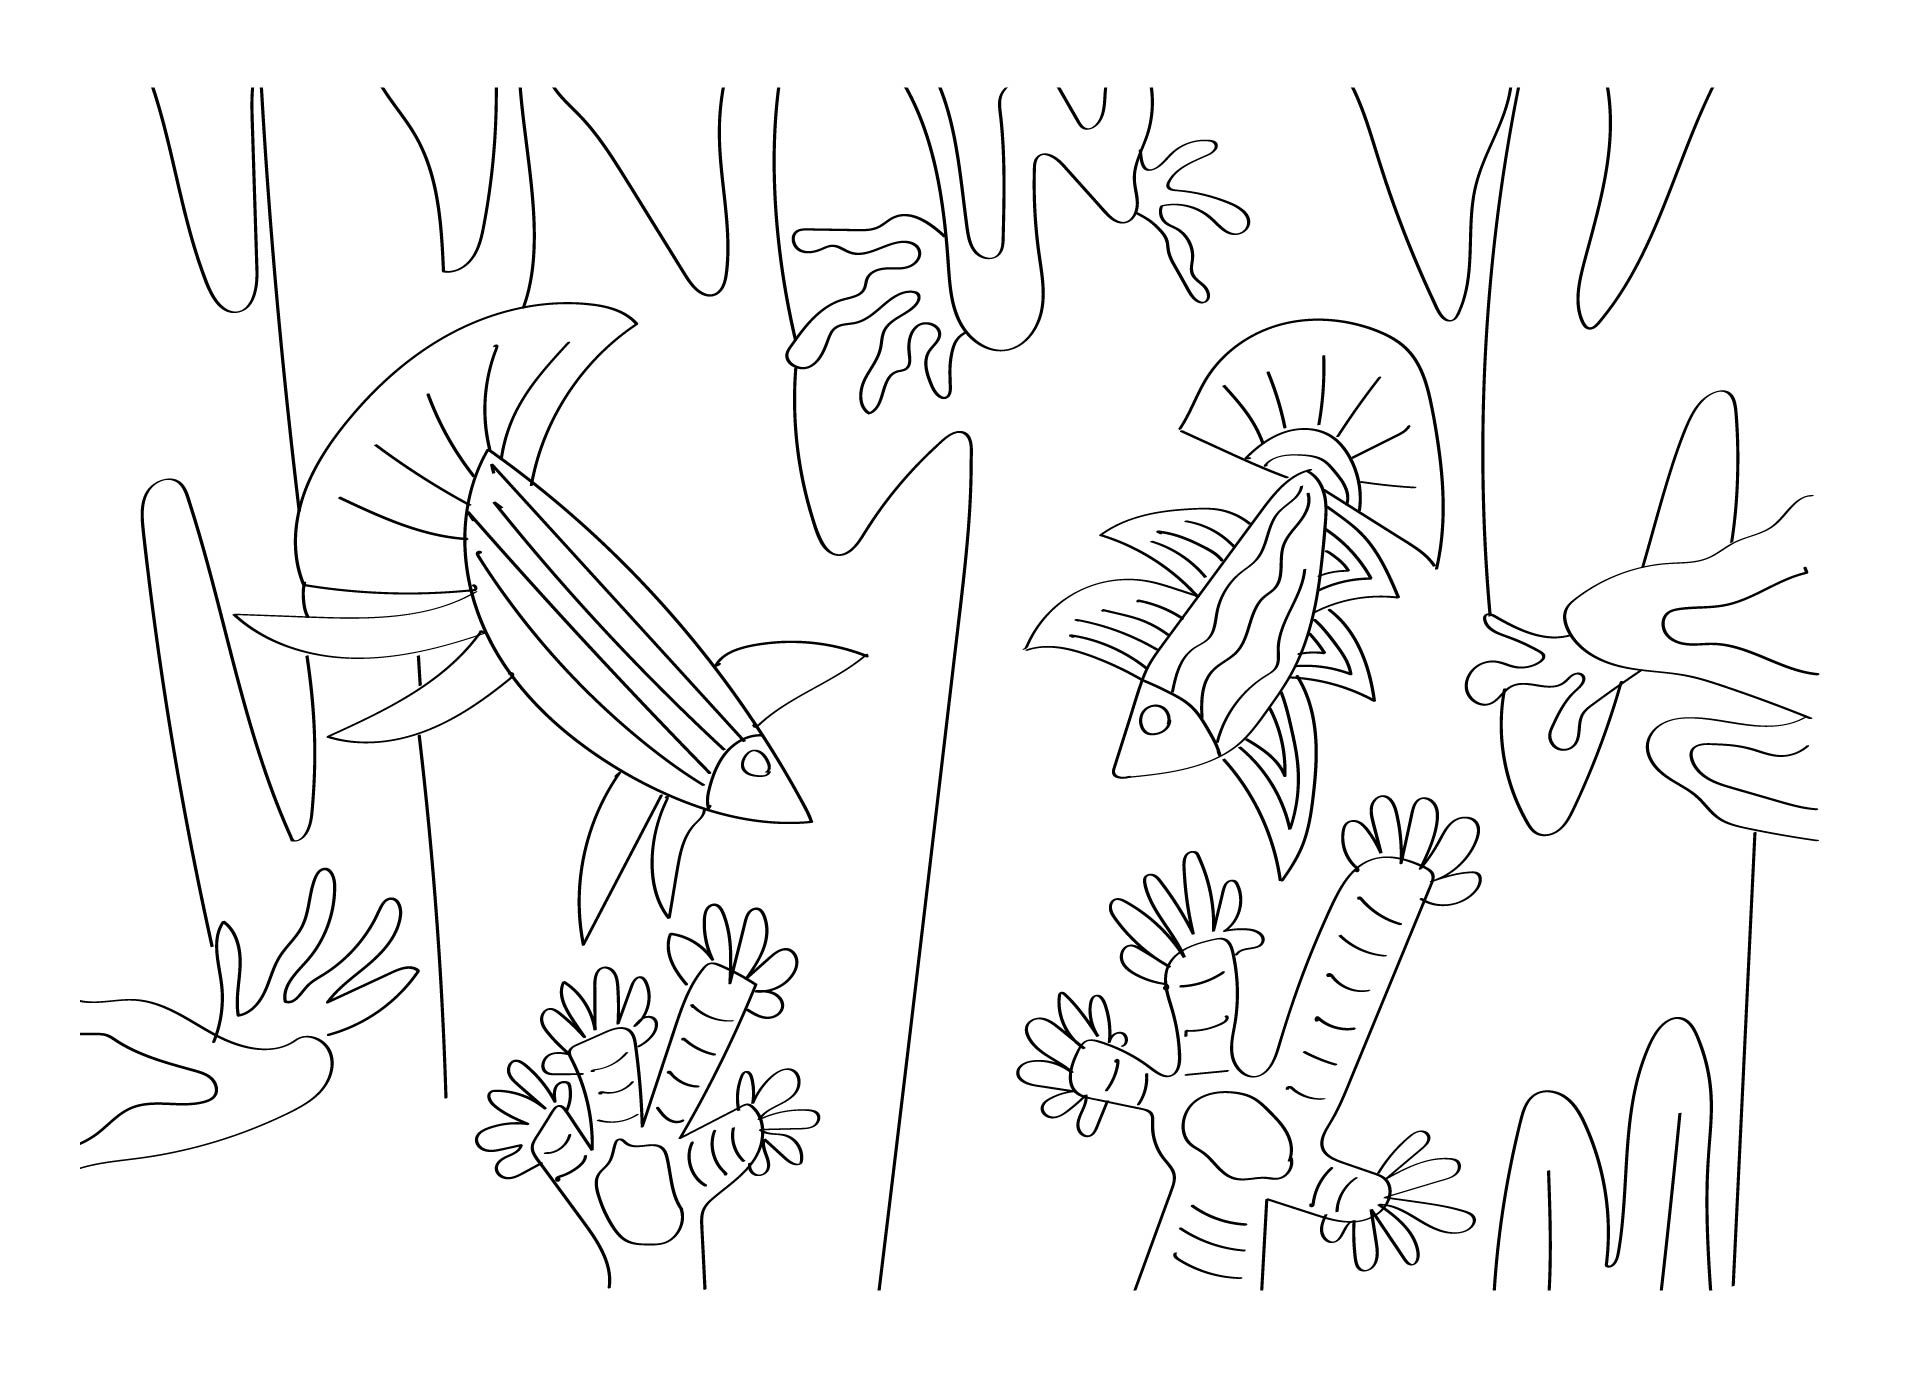 Printable Coloring Pages Doodle Art